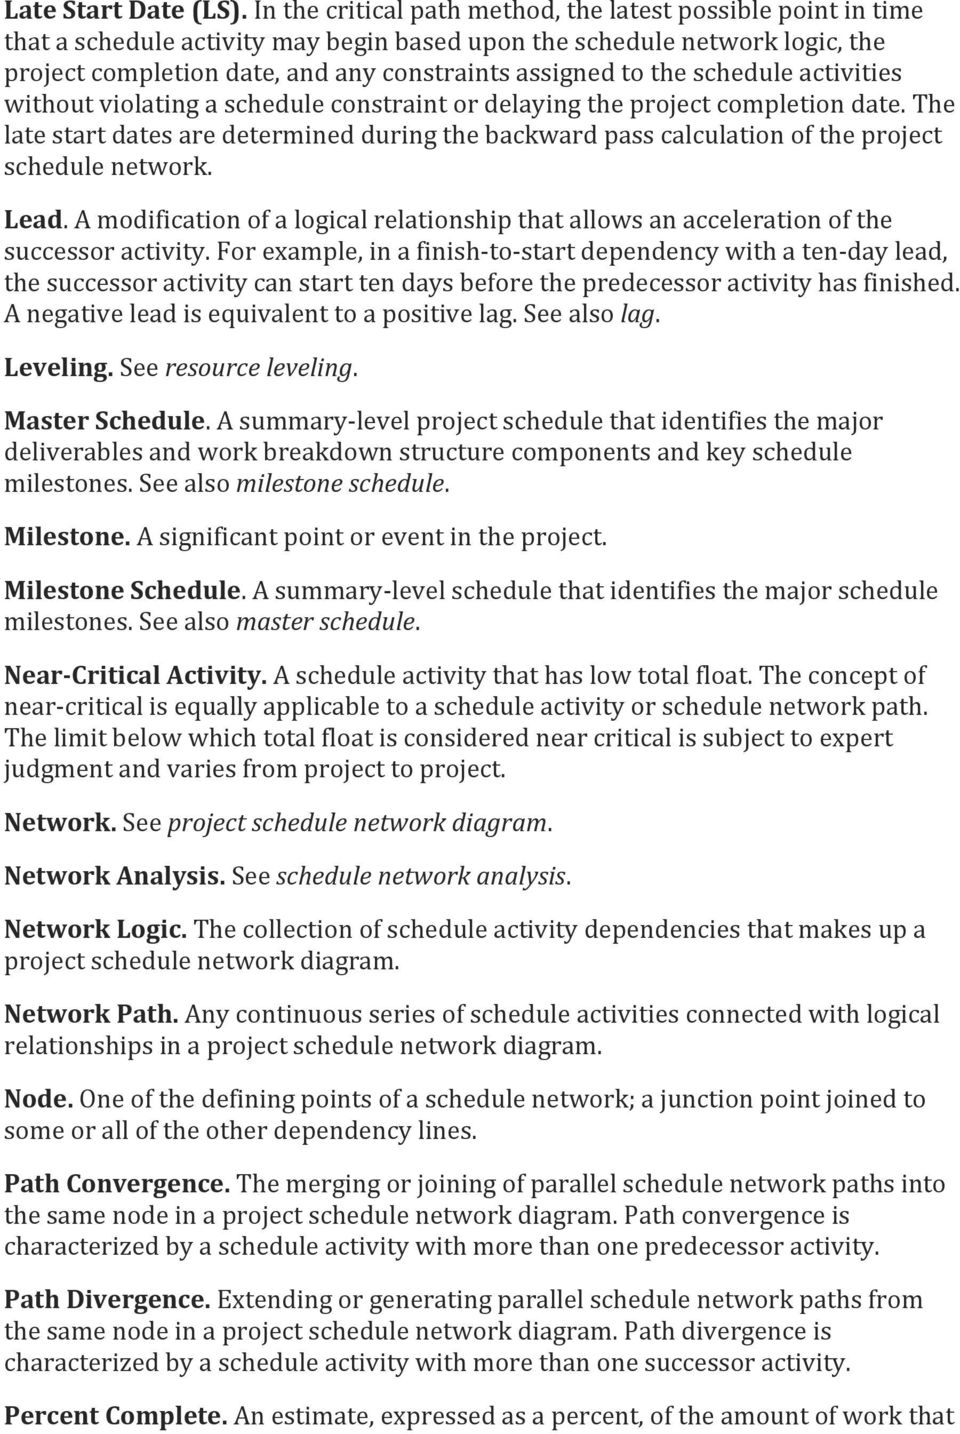 the schedule activities without violating a schedule constraint or delaying the project completion date.